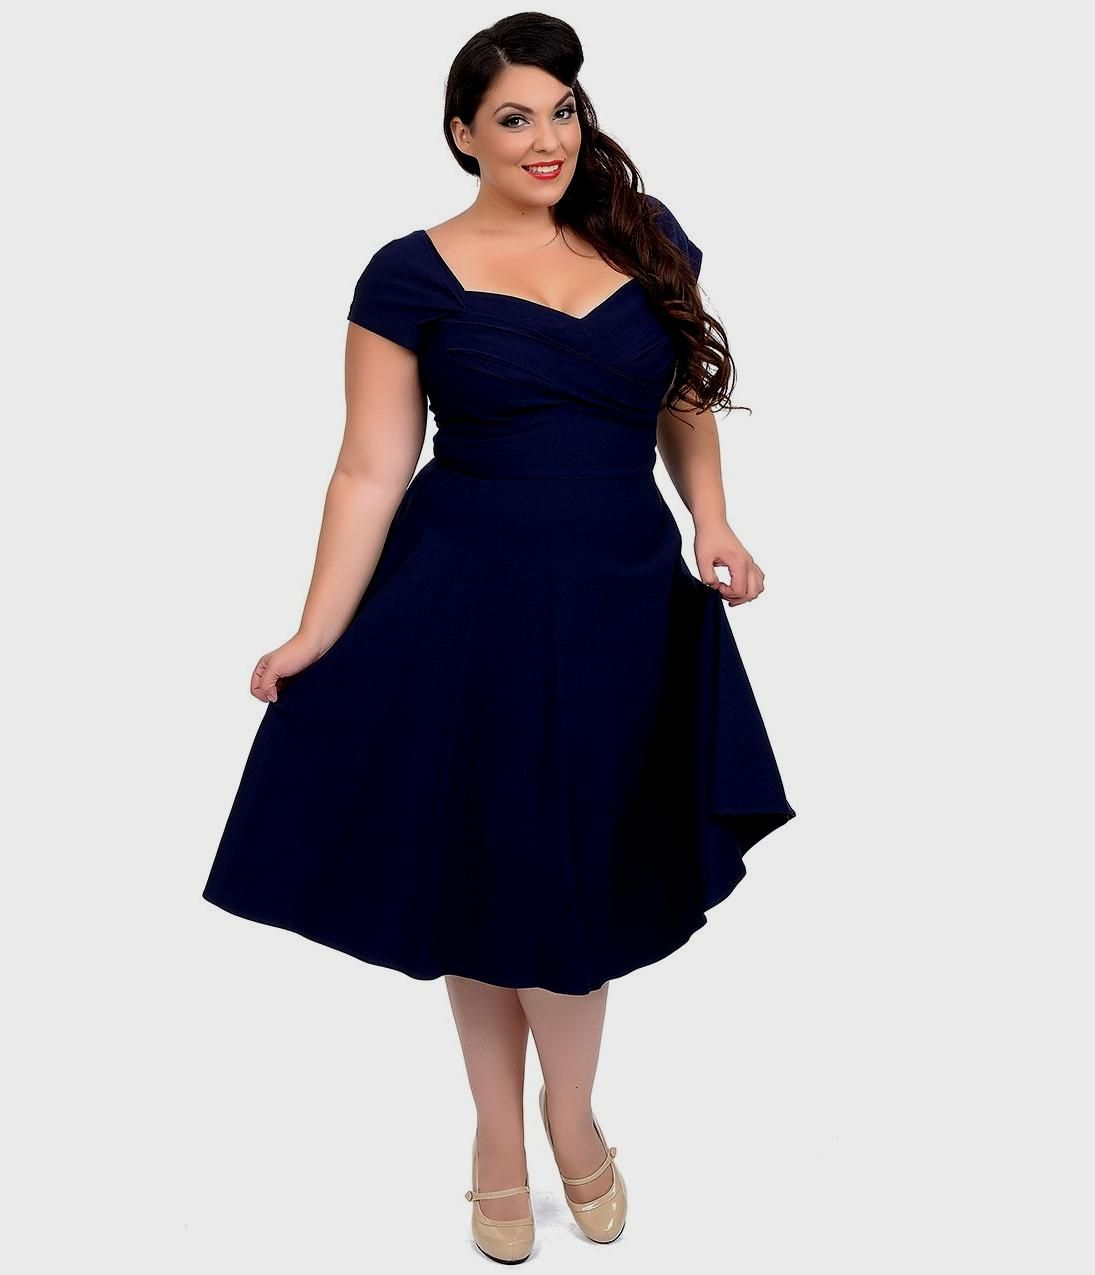 Blue Plus Size Dresses With Sleeves - blue plus size dresses with ...